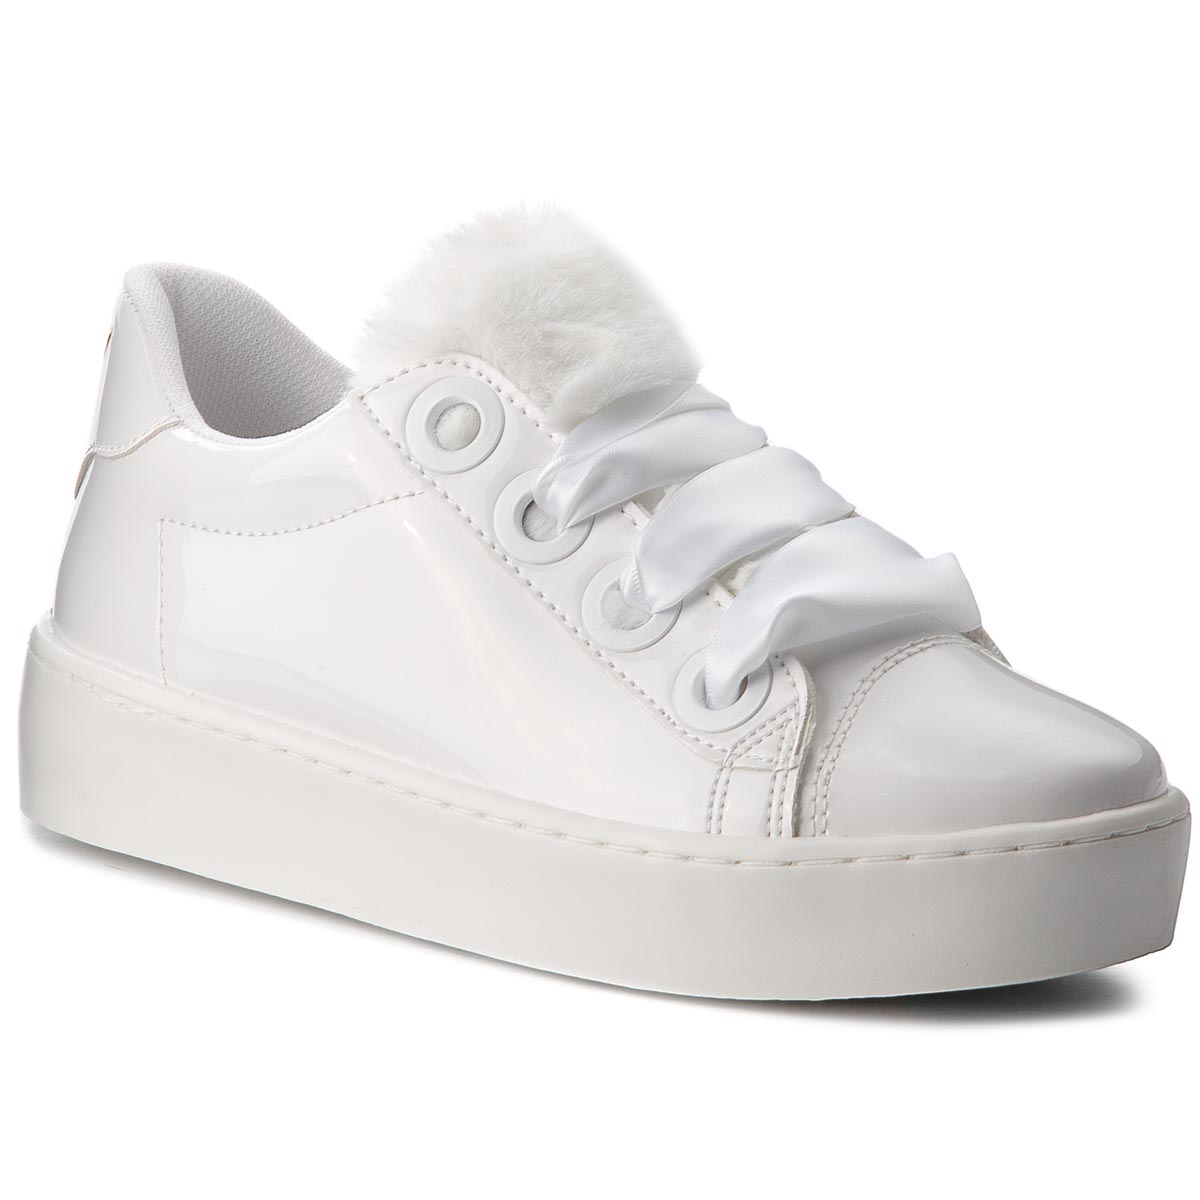 Sneakers GUESS - FLURN3 PAF12 WHITE